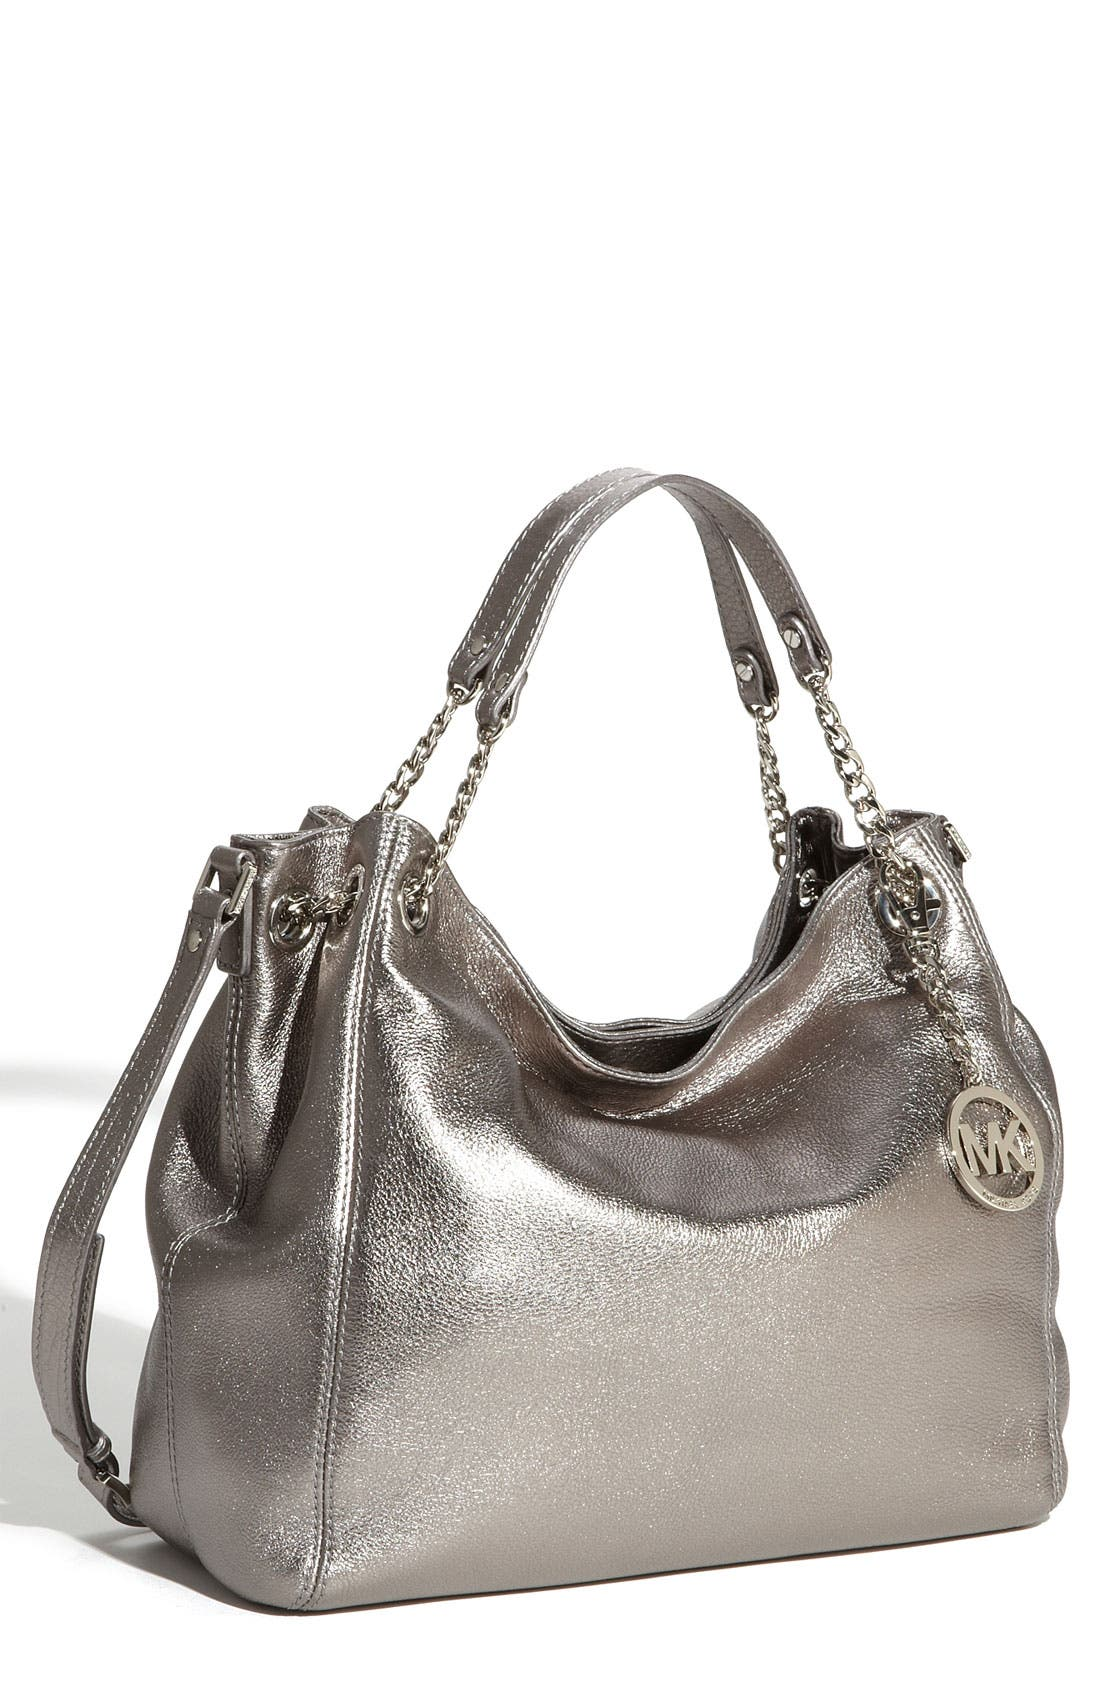 Alternate Image 1 Selected - MICHAEL Michael Kors 'Jet Set - Large' Metallic Leather Shoulder Tote